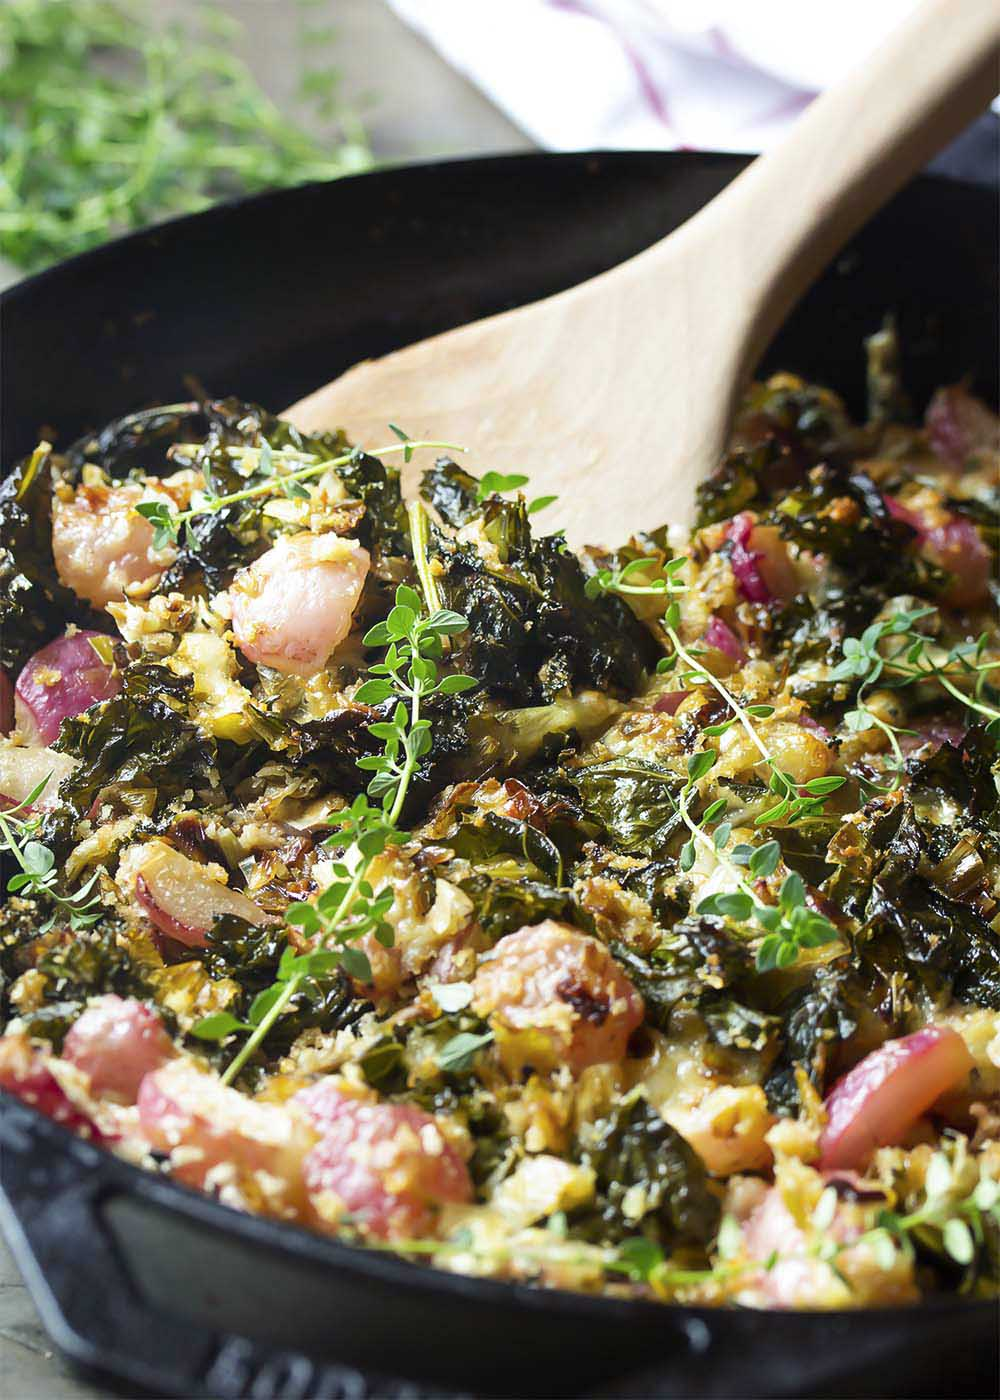 A serving spoon scooping out a portion of kale, radish, and leek gratin from the cast iron pan.